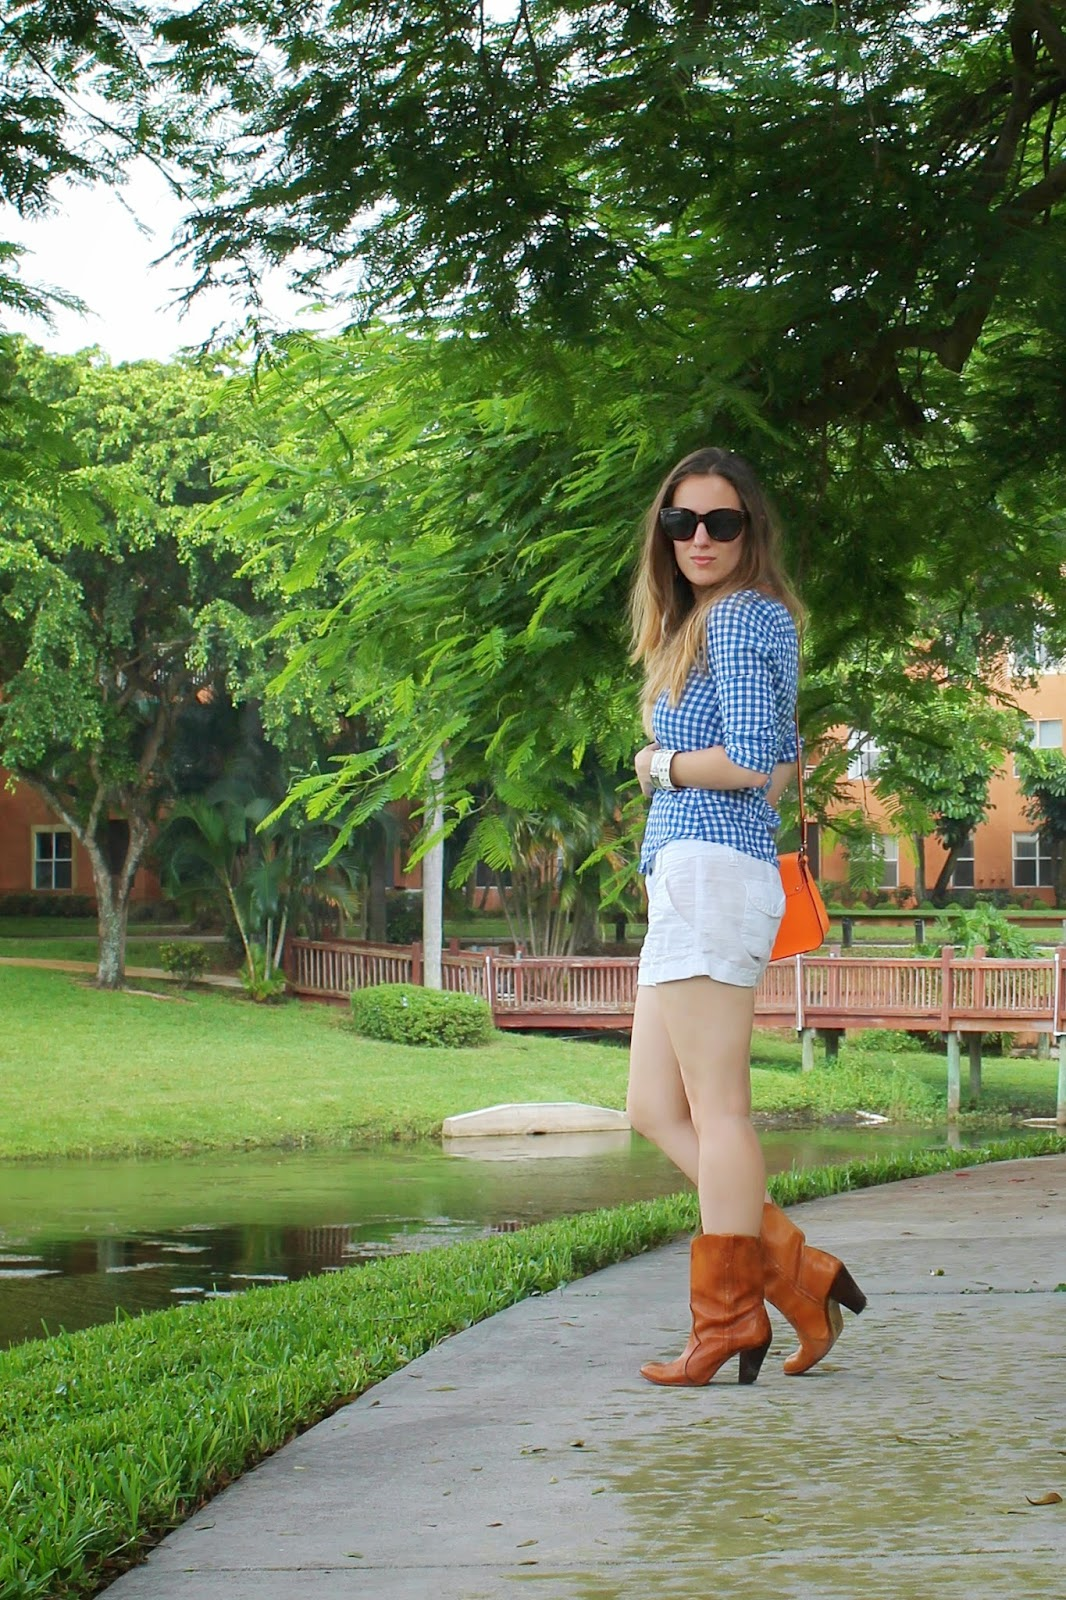 University of Florida, Gators, game day style, outfit ideas, Abercrombie & Fitch, Nordstrom, consignment, Target, Kate Spade, fashion blog, style blog, fashion, style, preppy, southern, cowboy boots, plaid, fall fashion, Swatch